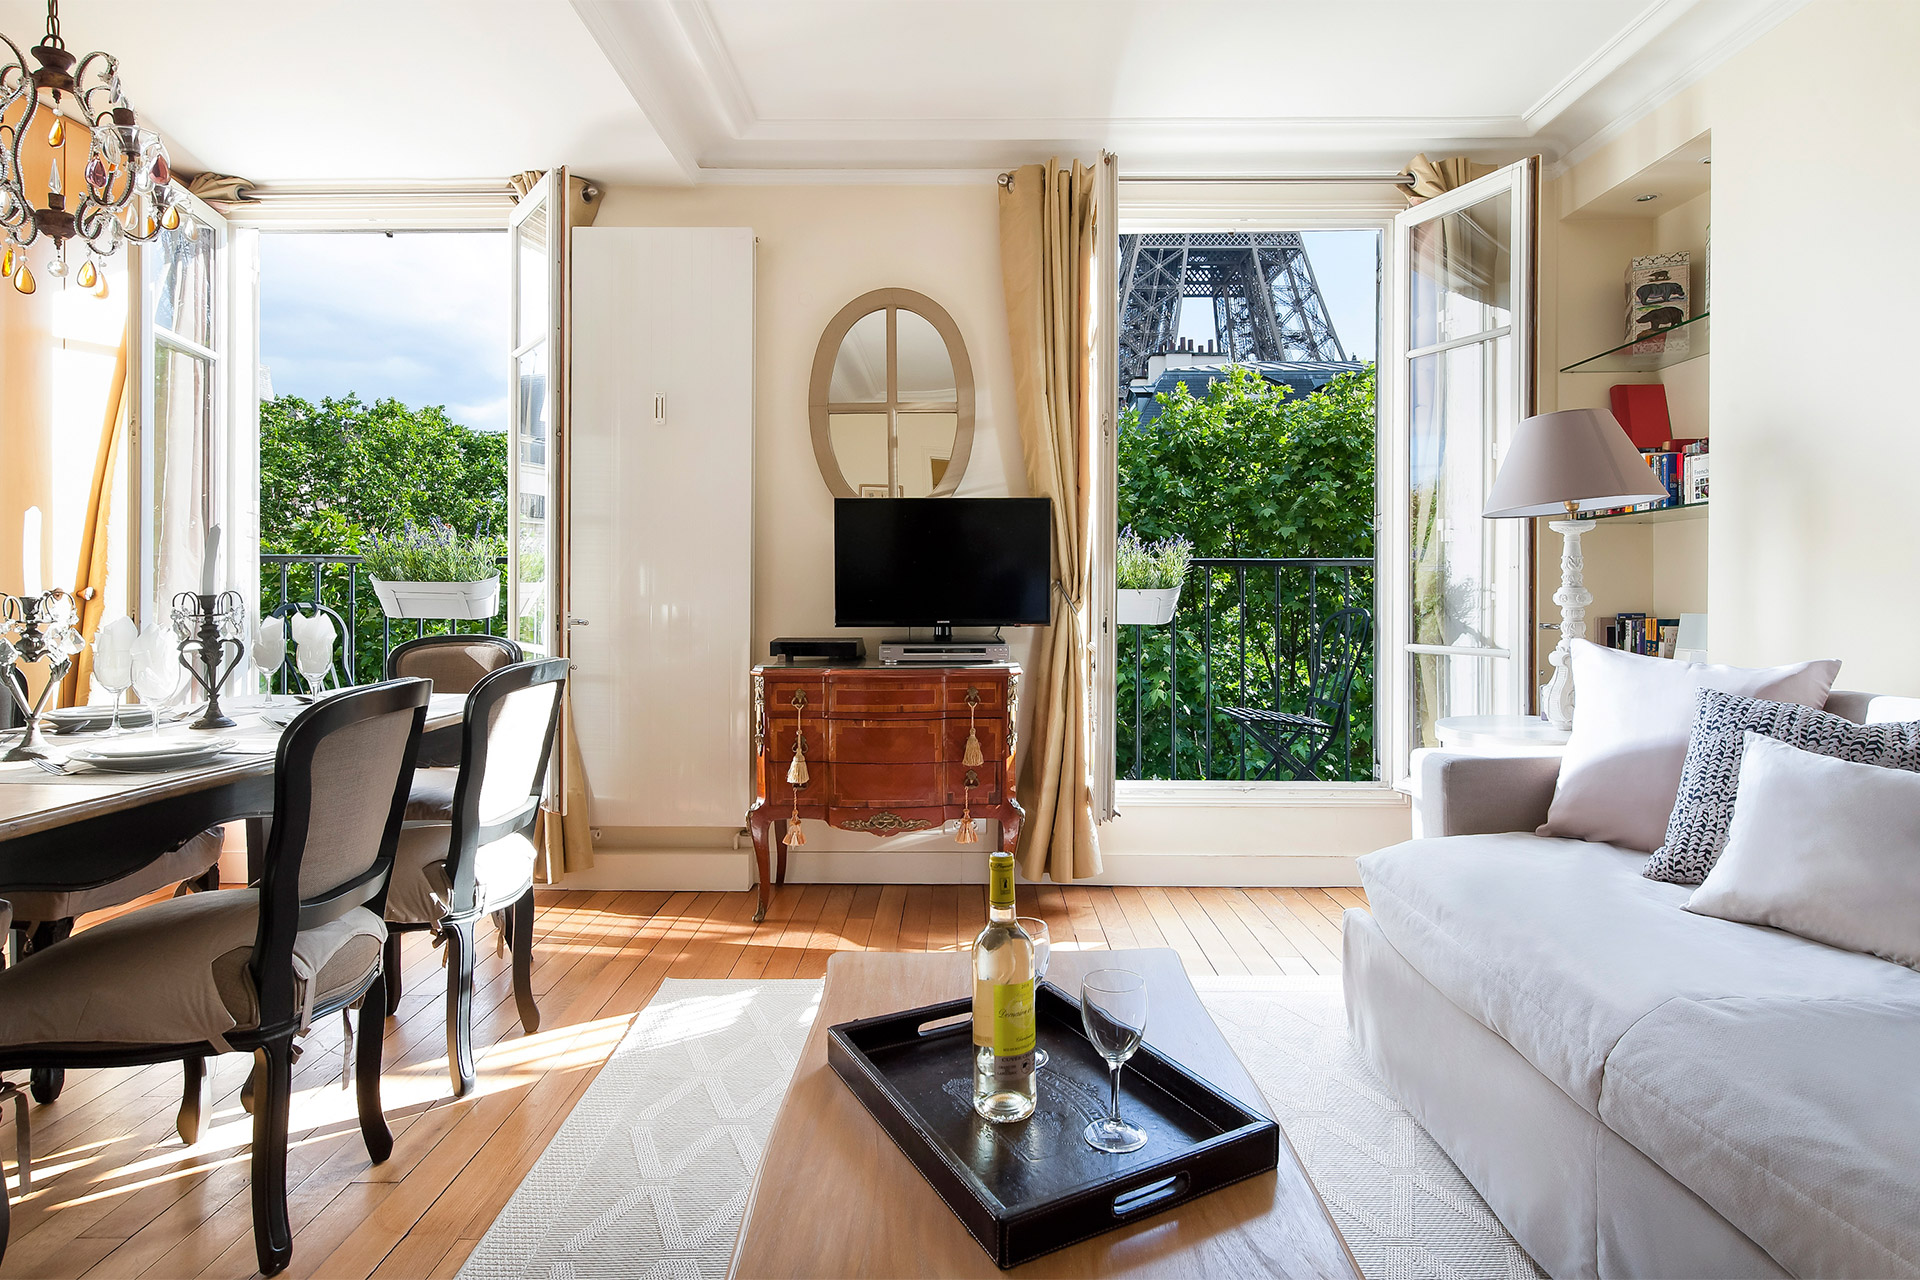 Living Room of the Bergerac vacation rental with stunning Eiffel Tower view